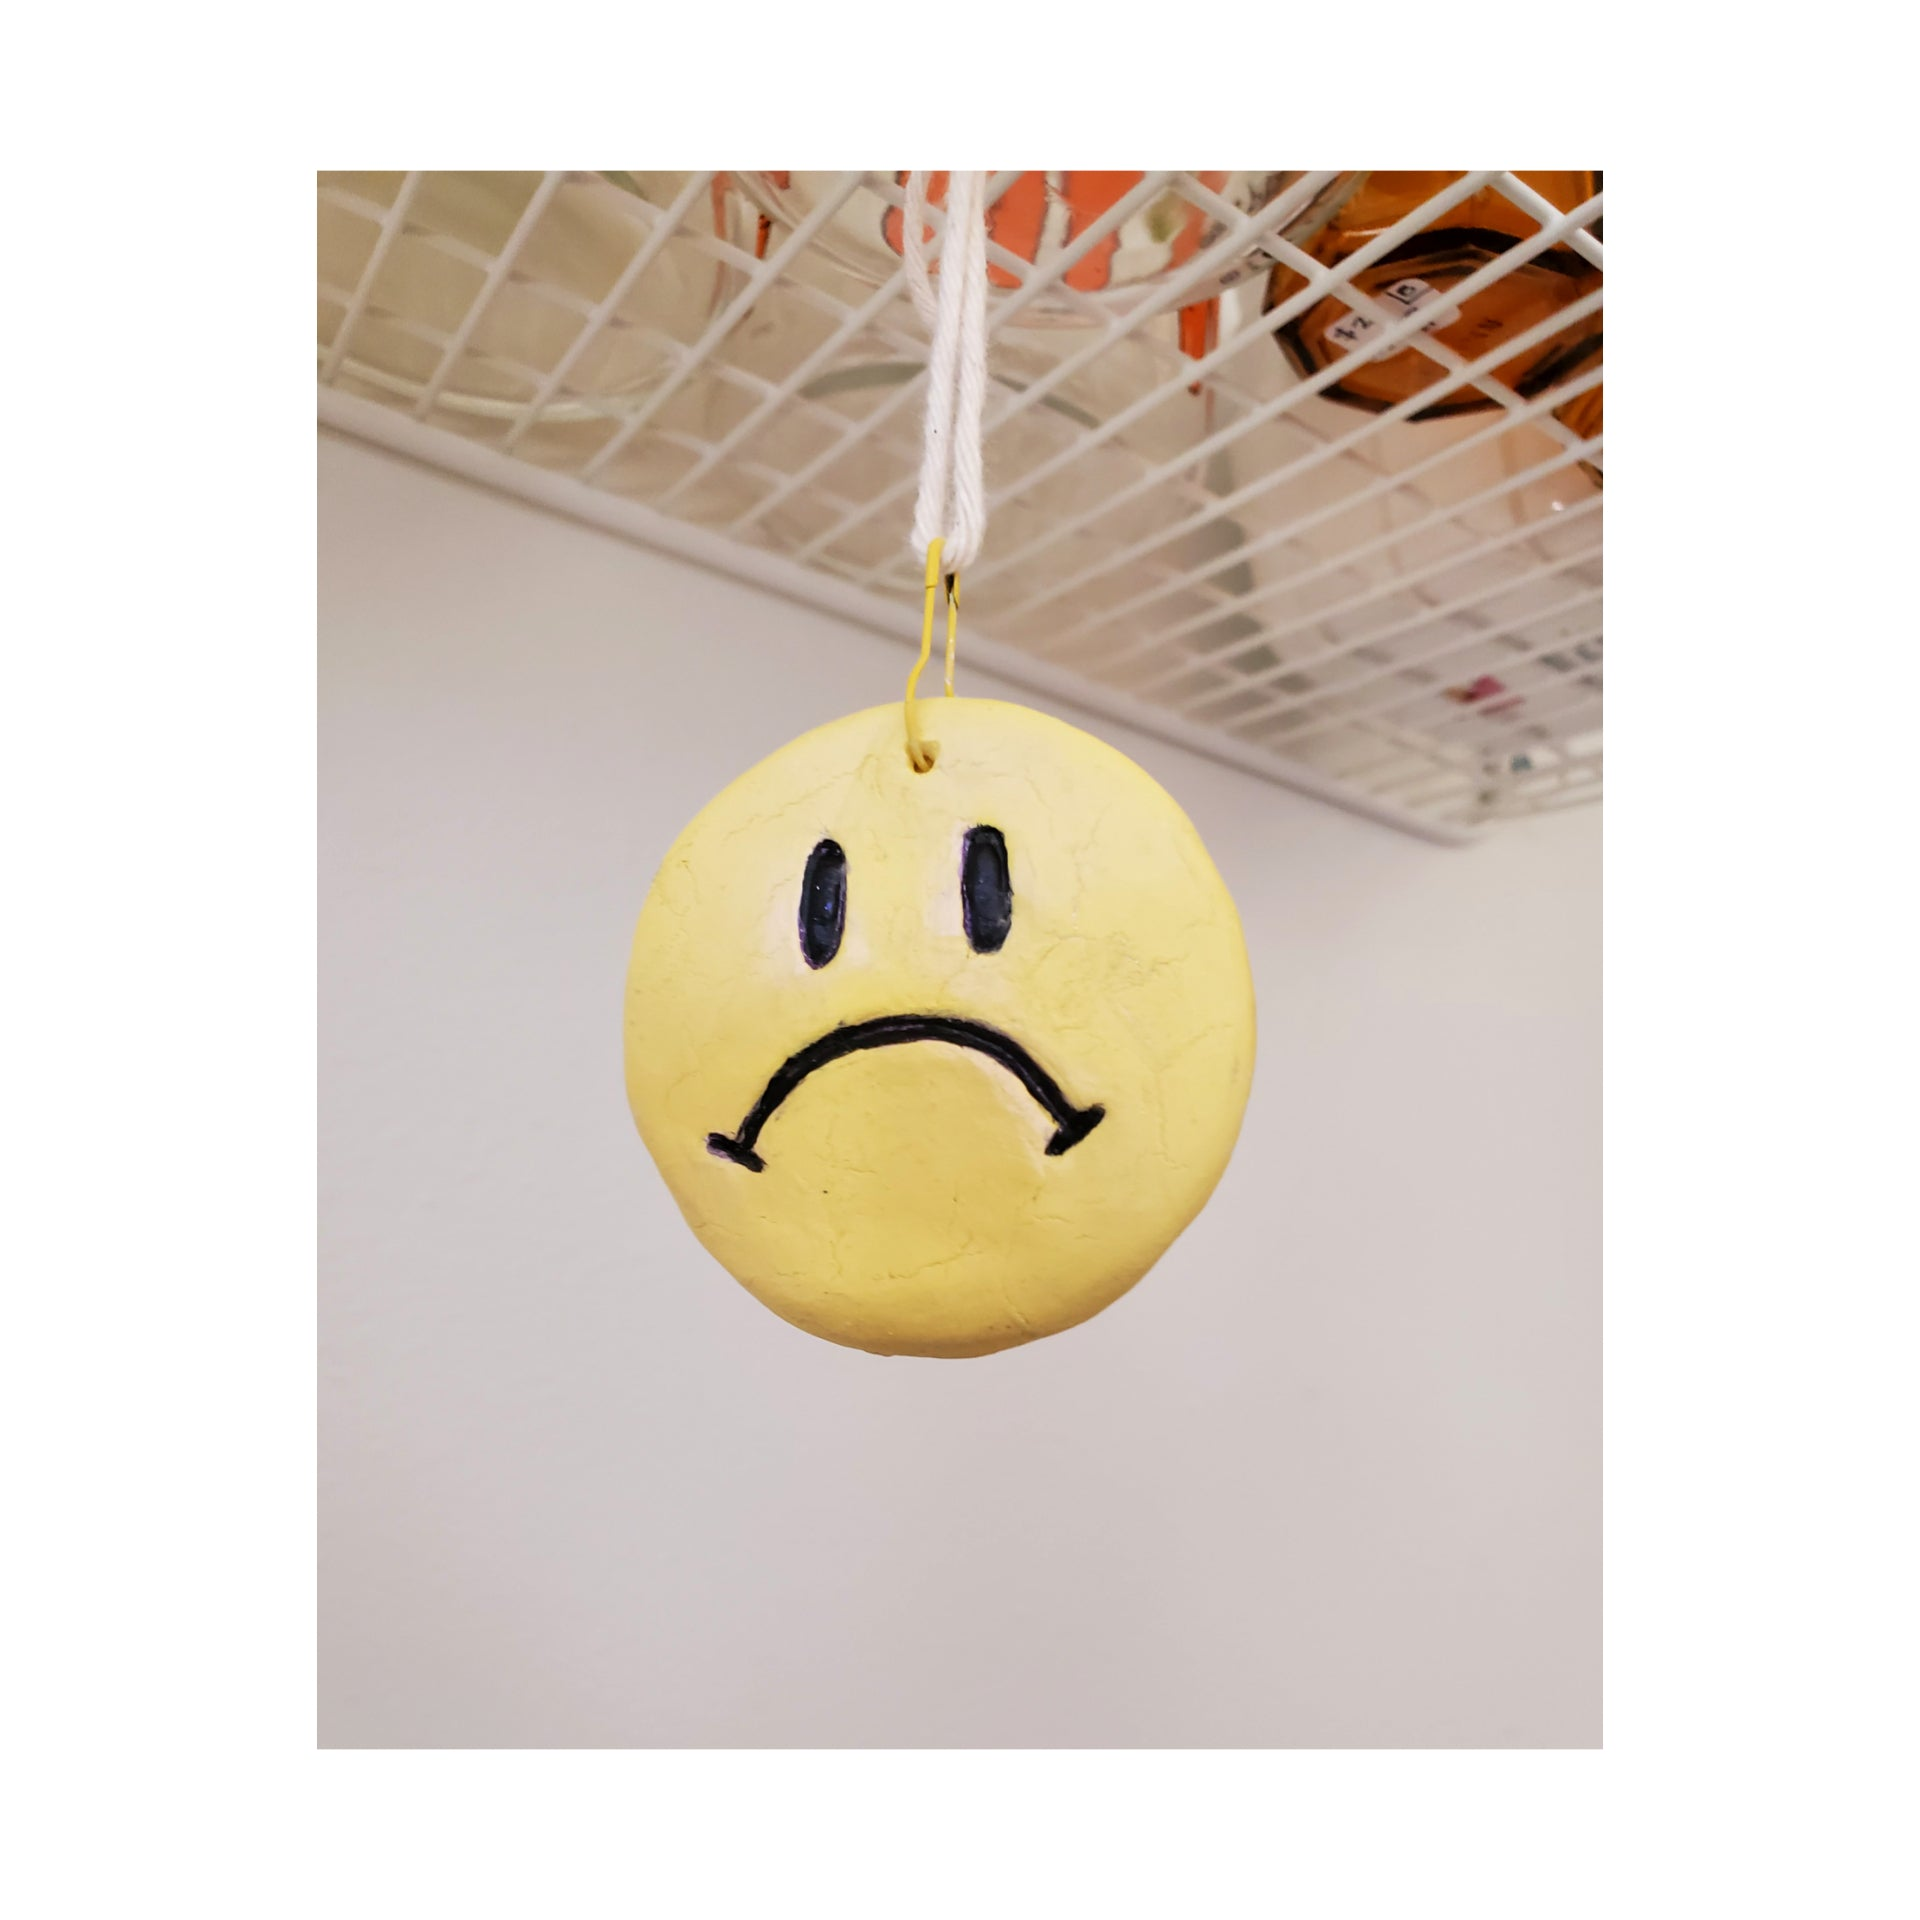 Handmade Unhappy Face Ornament